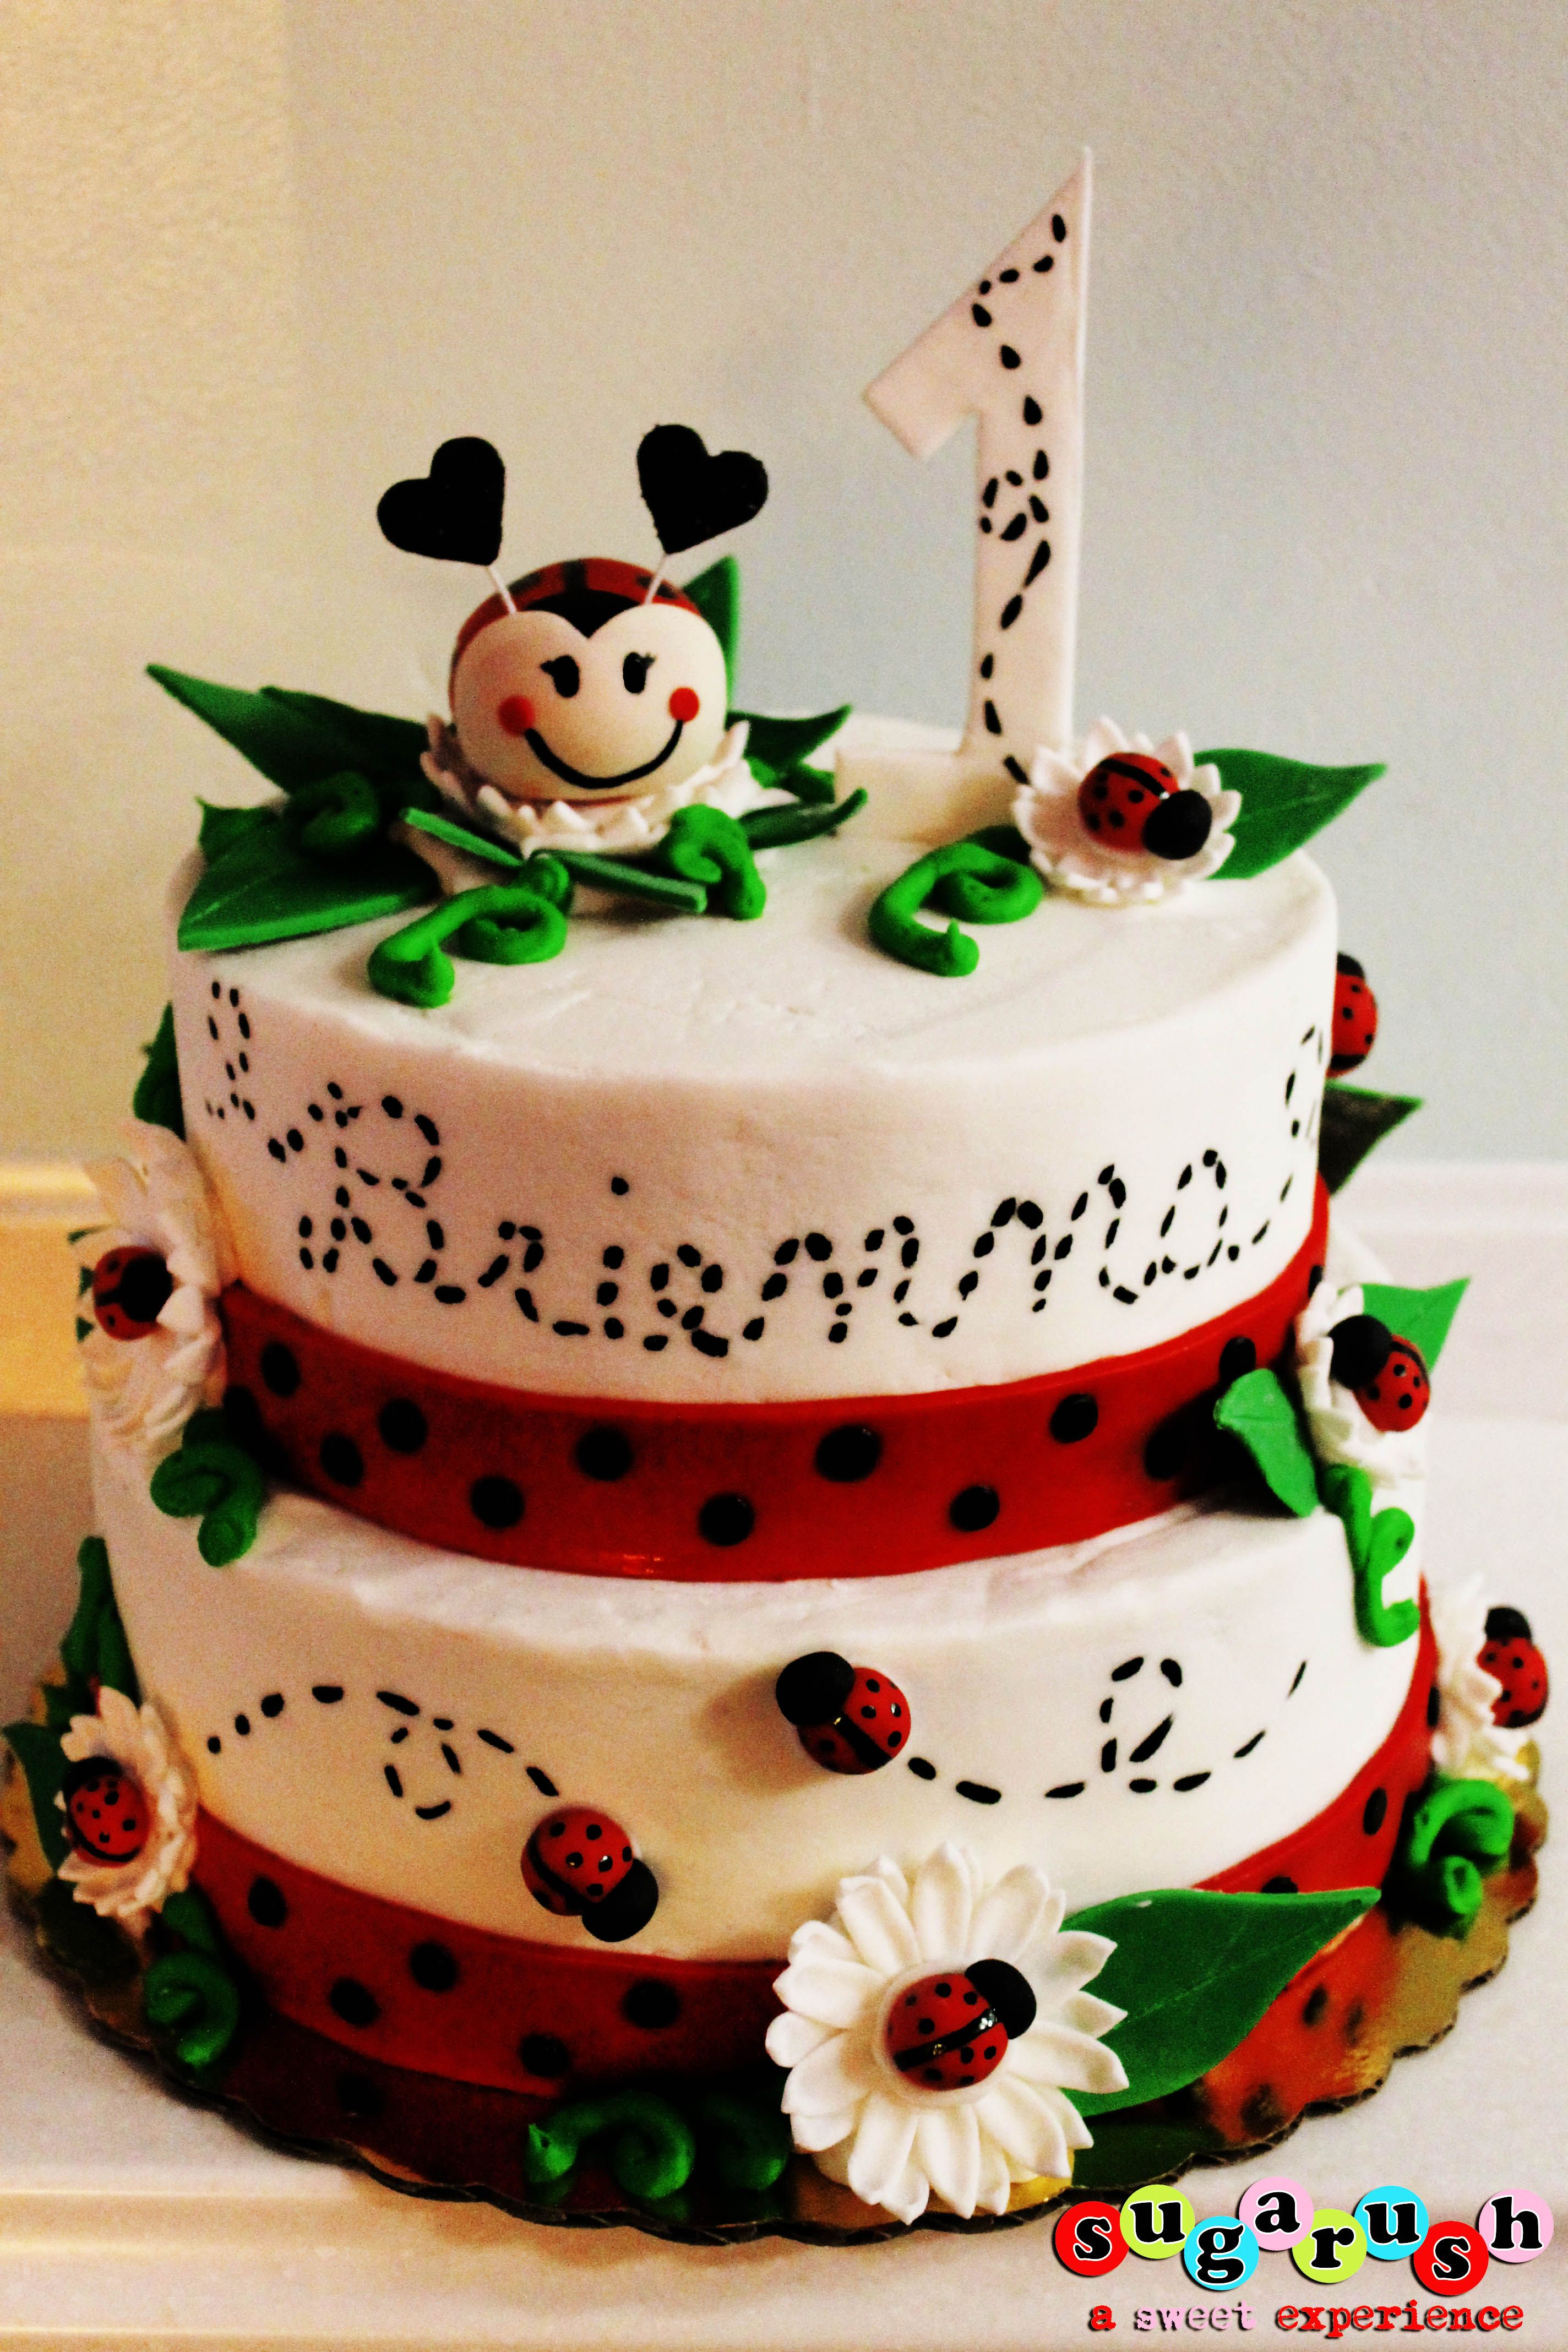 Lady Bug Cake Cathy should make this CAKES DE ABEJAS MARIQUITAS